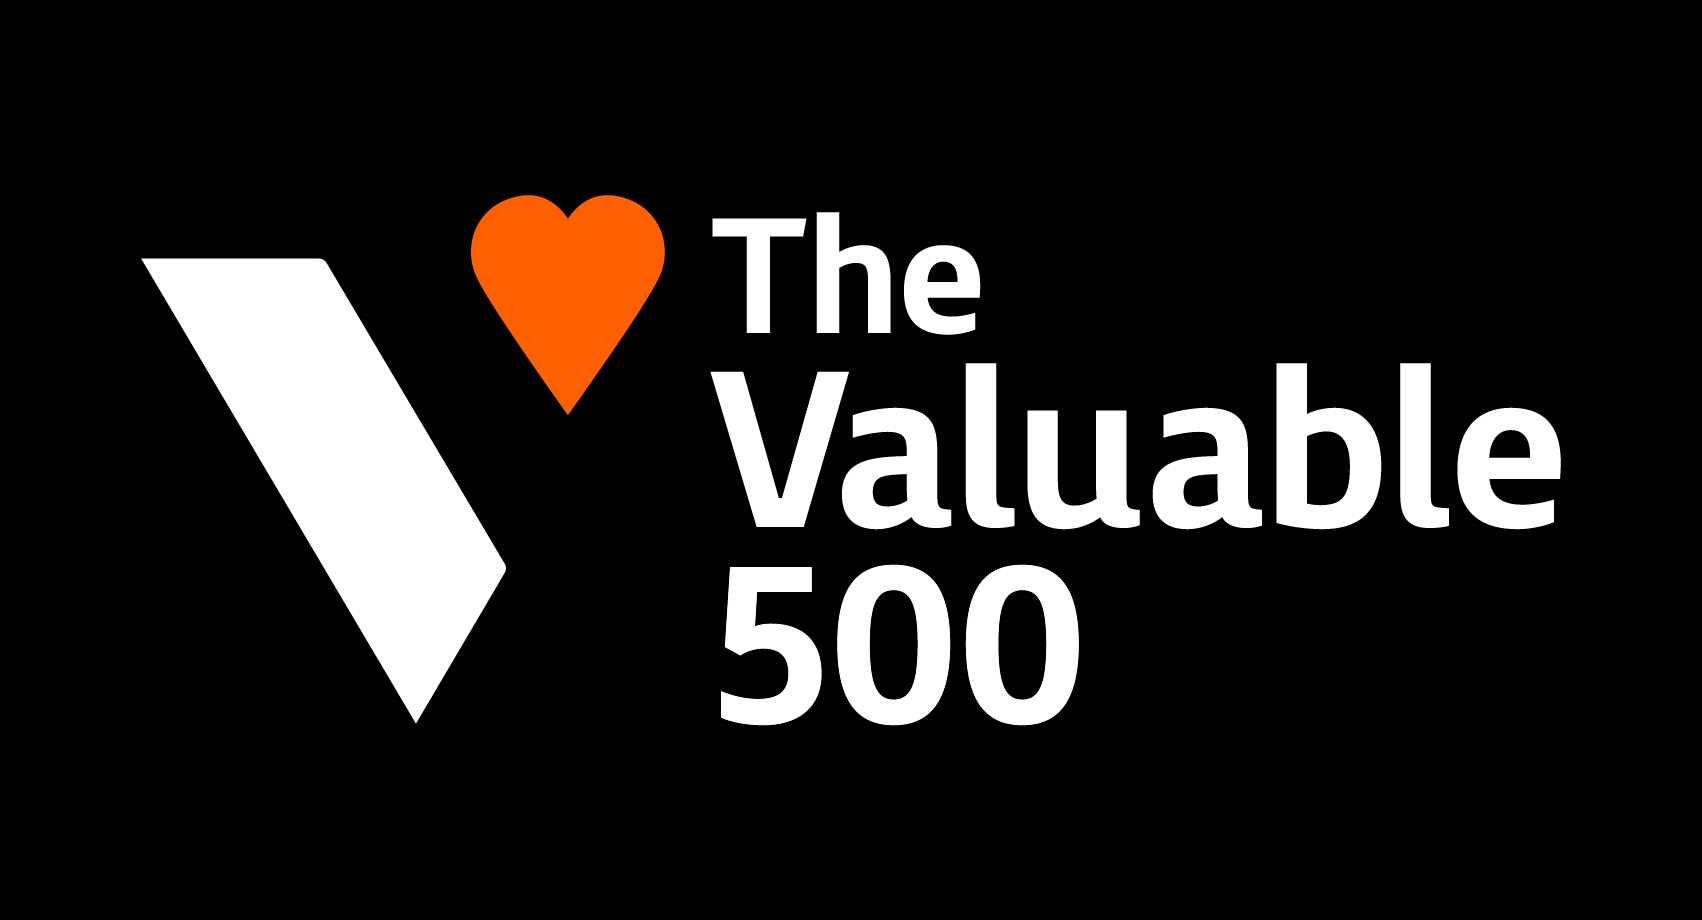 The Valuable Five hundred